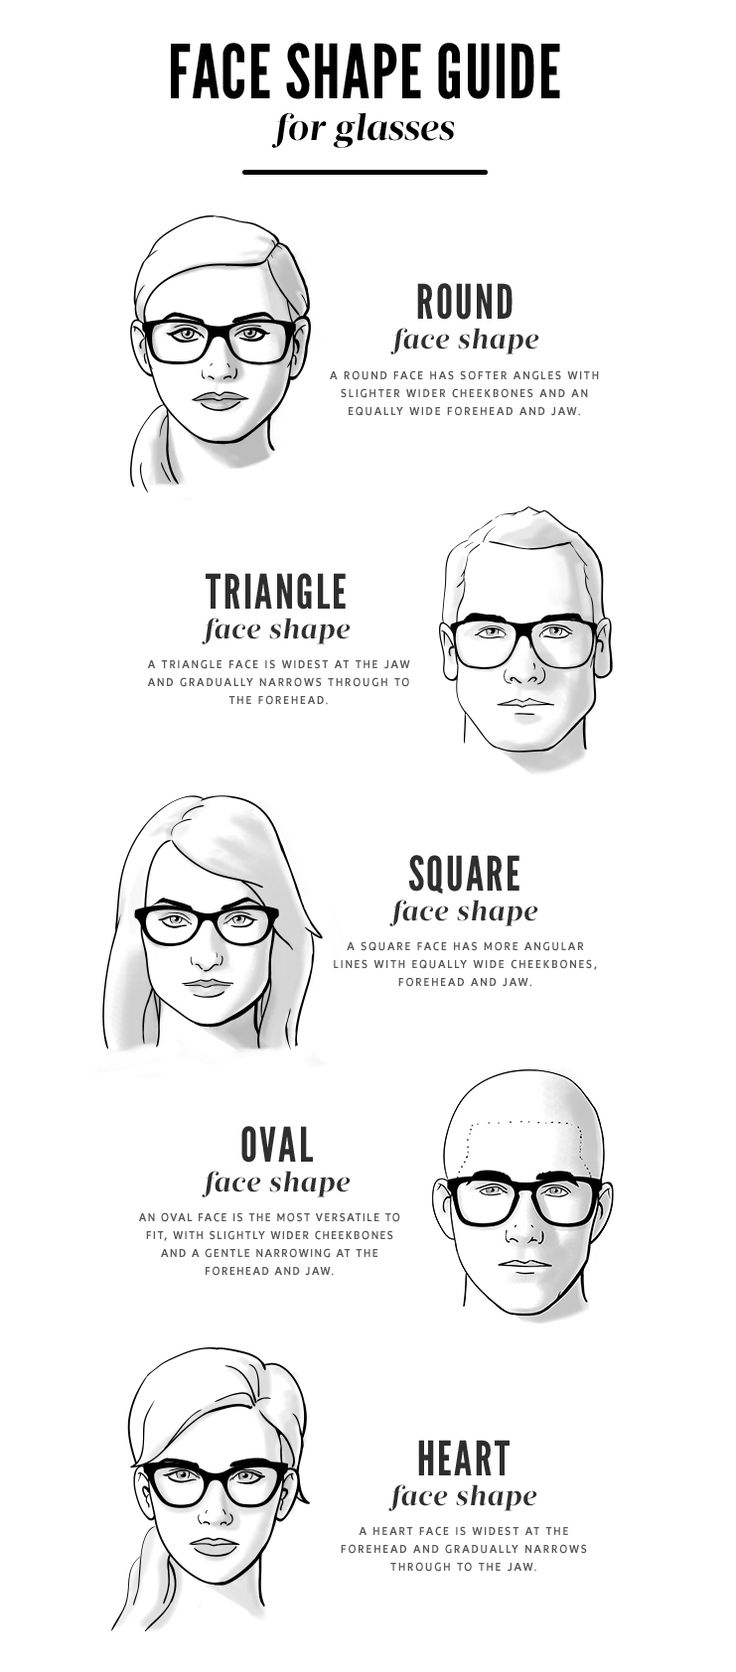 17 best Glasses Face Shape Guide images on Pinterest | Face shapes ...